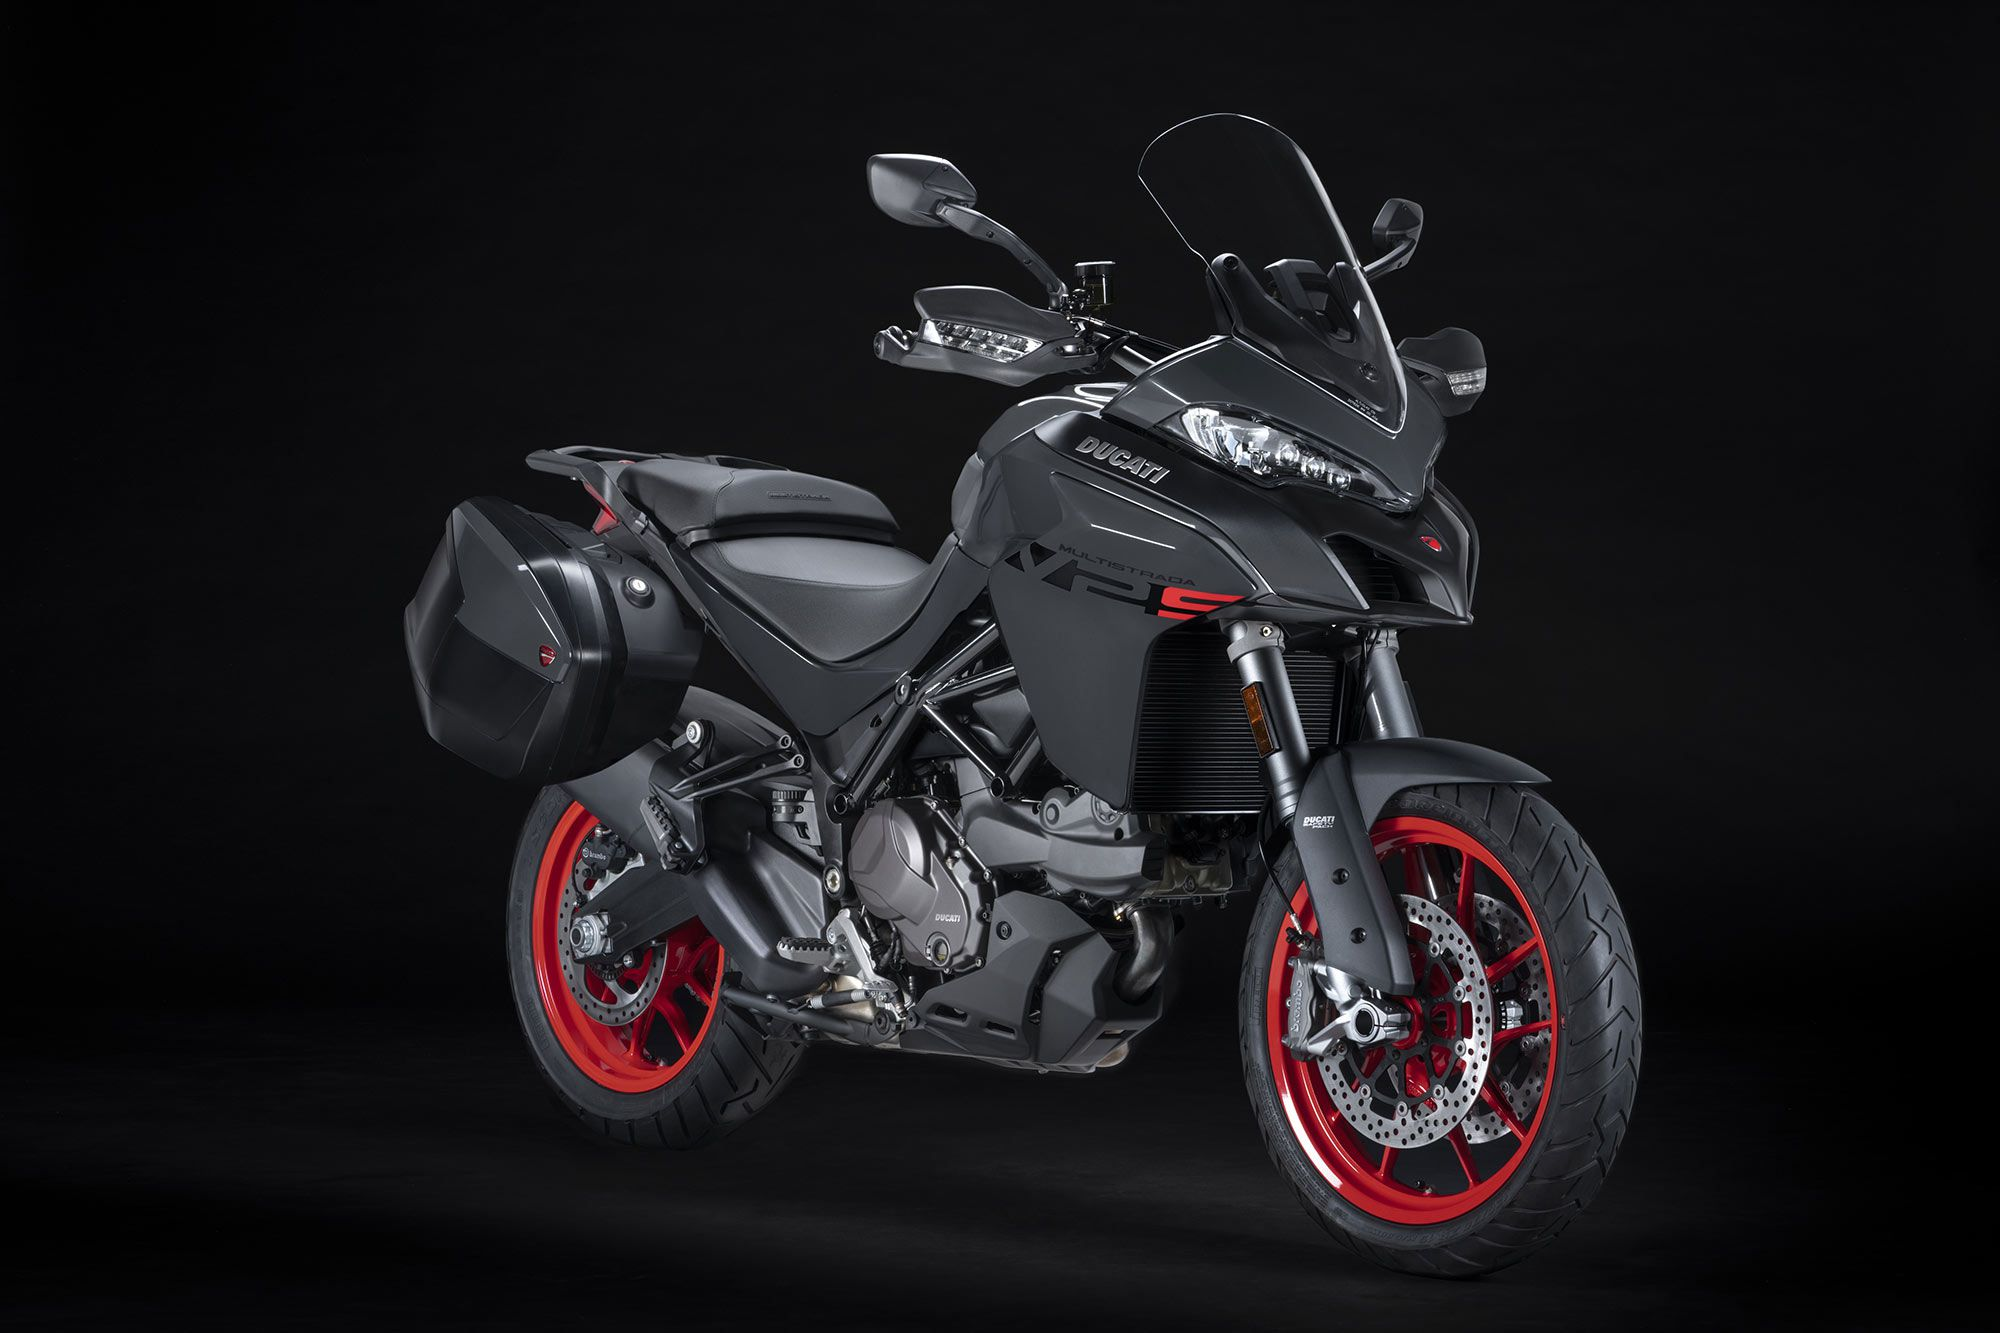 The V2 S will come equipped with Ducati Skyhook Evo suspension.